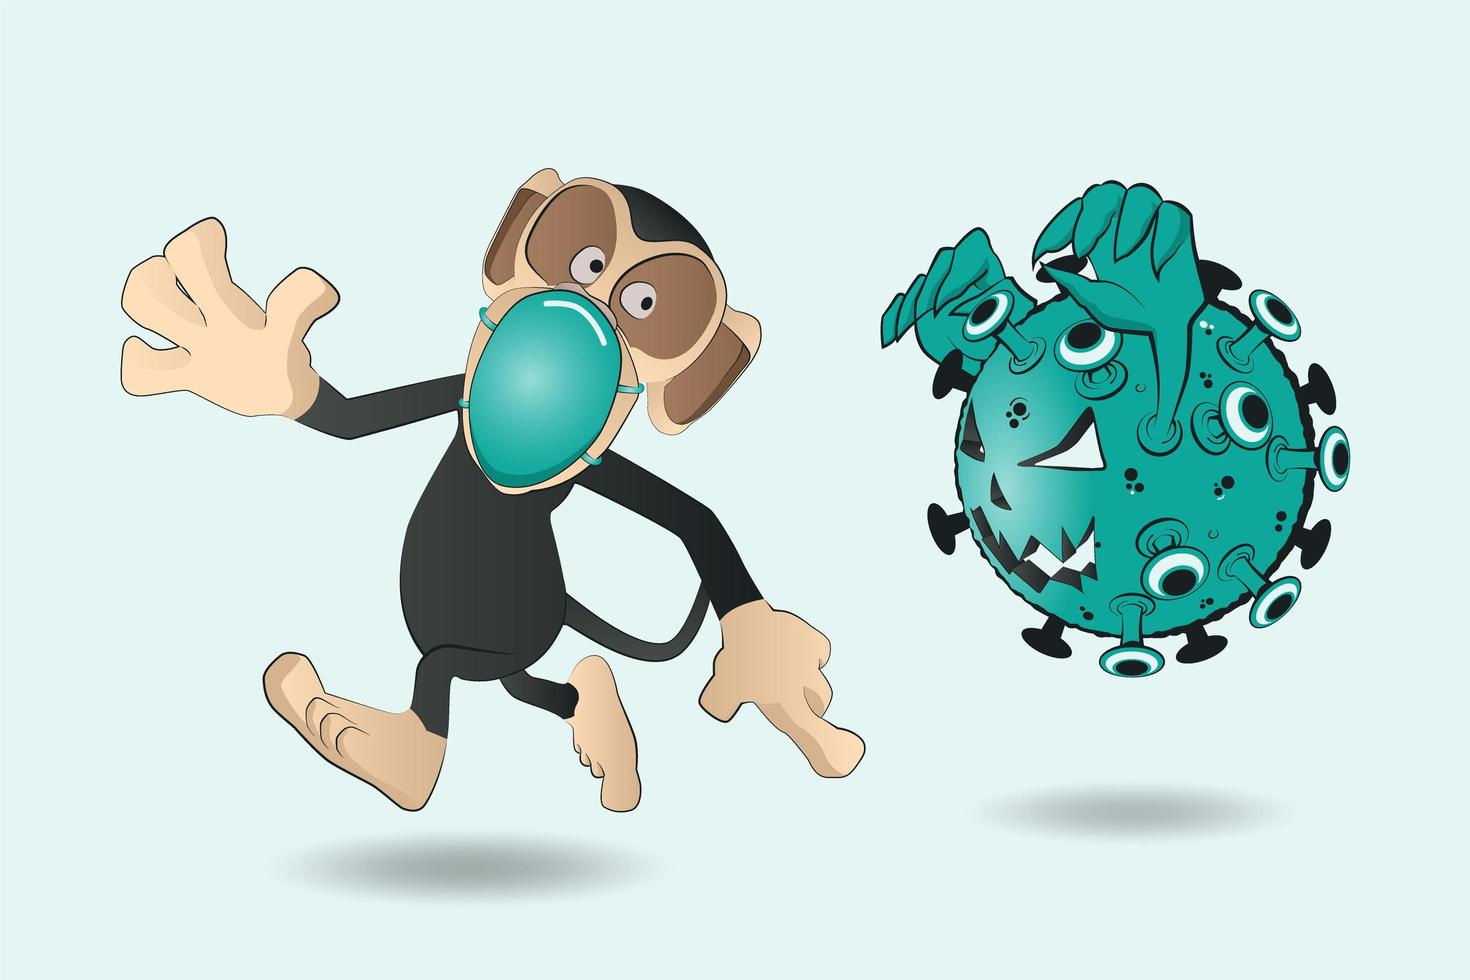 Cartoon Monkey Wearing Surgical Mask and Escapes Covid-19 vector